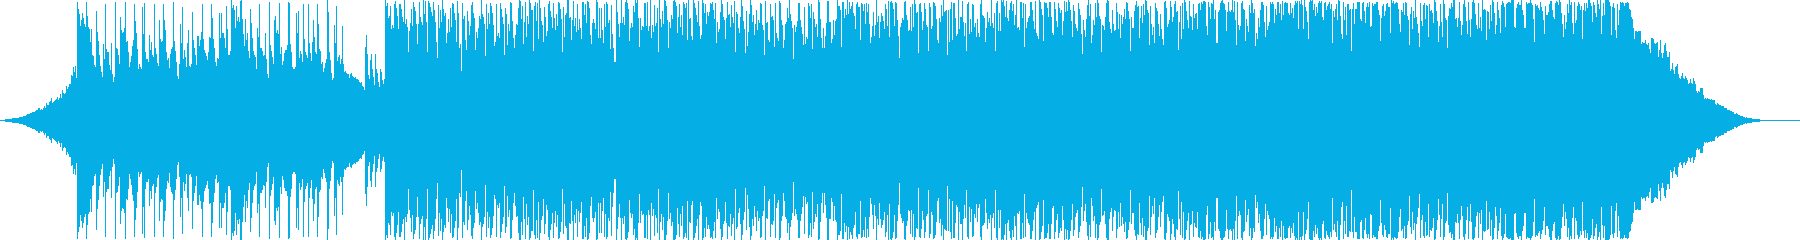 EDM with the image of a blue sky's reproduced waveform